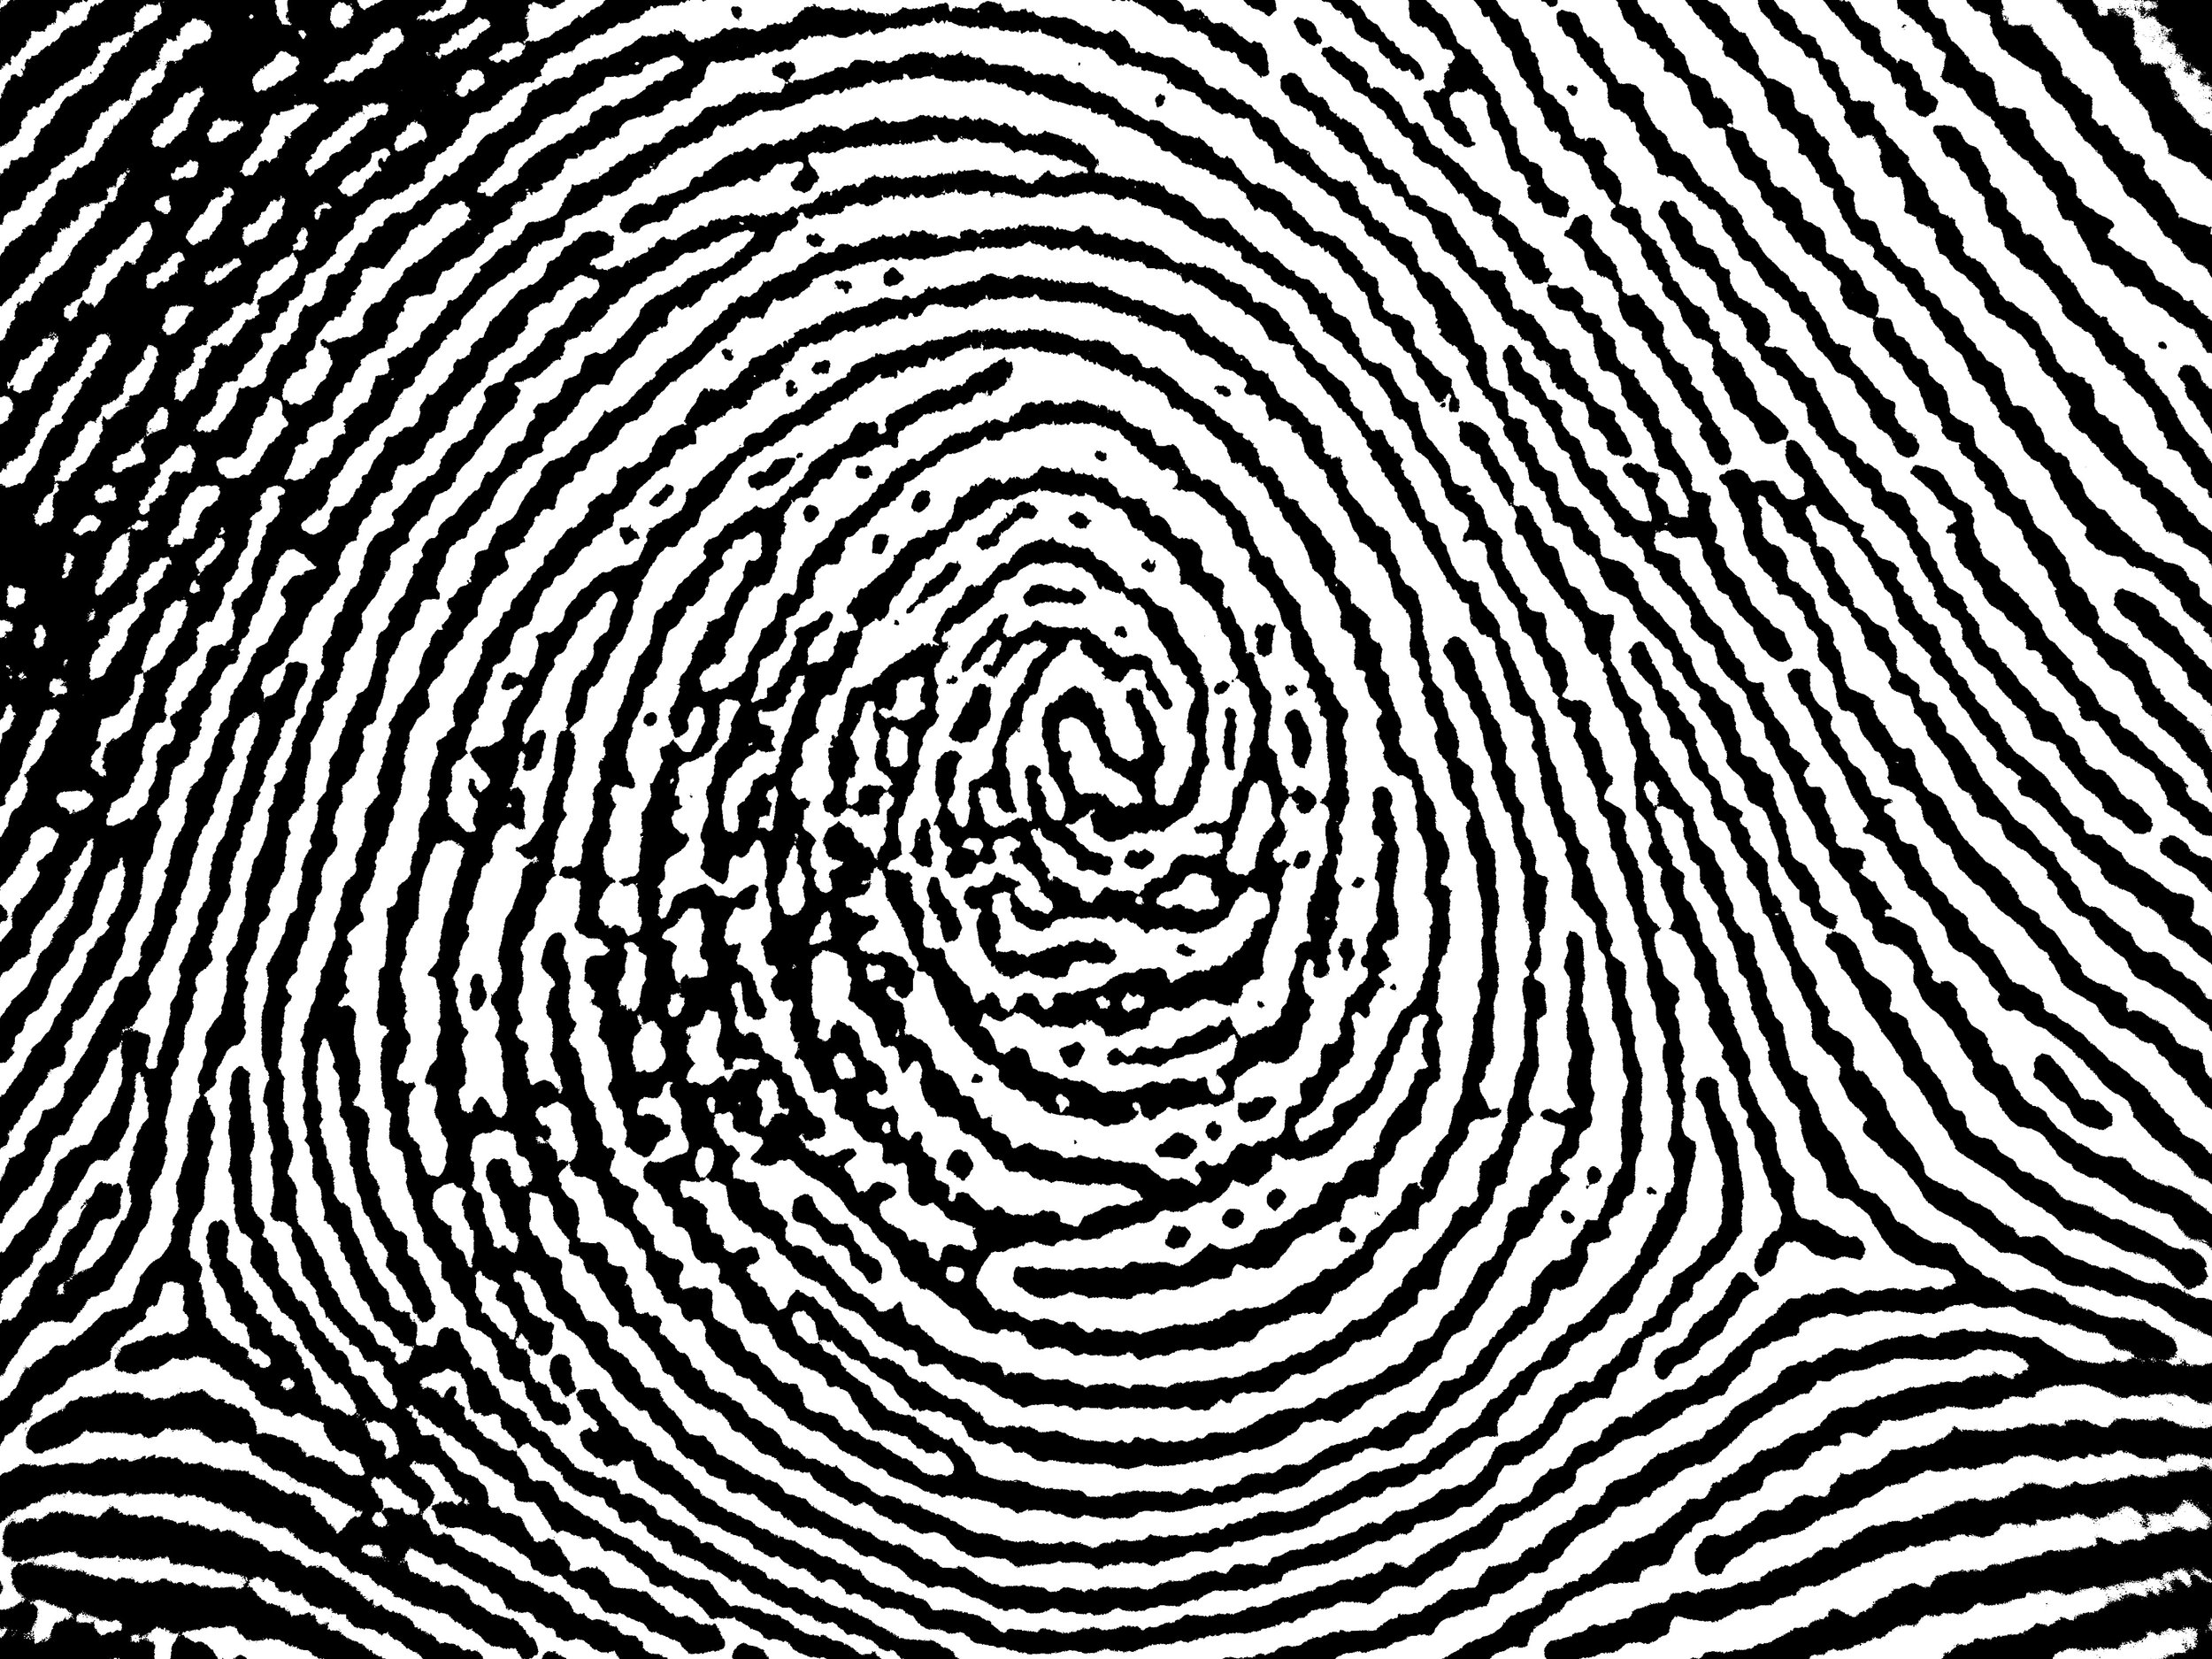 Plain_whorl_in_a_right_thumbprint.jpg